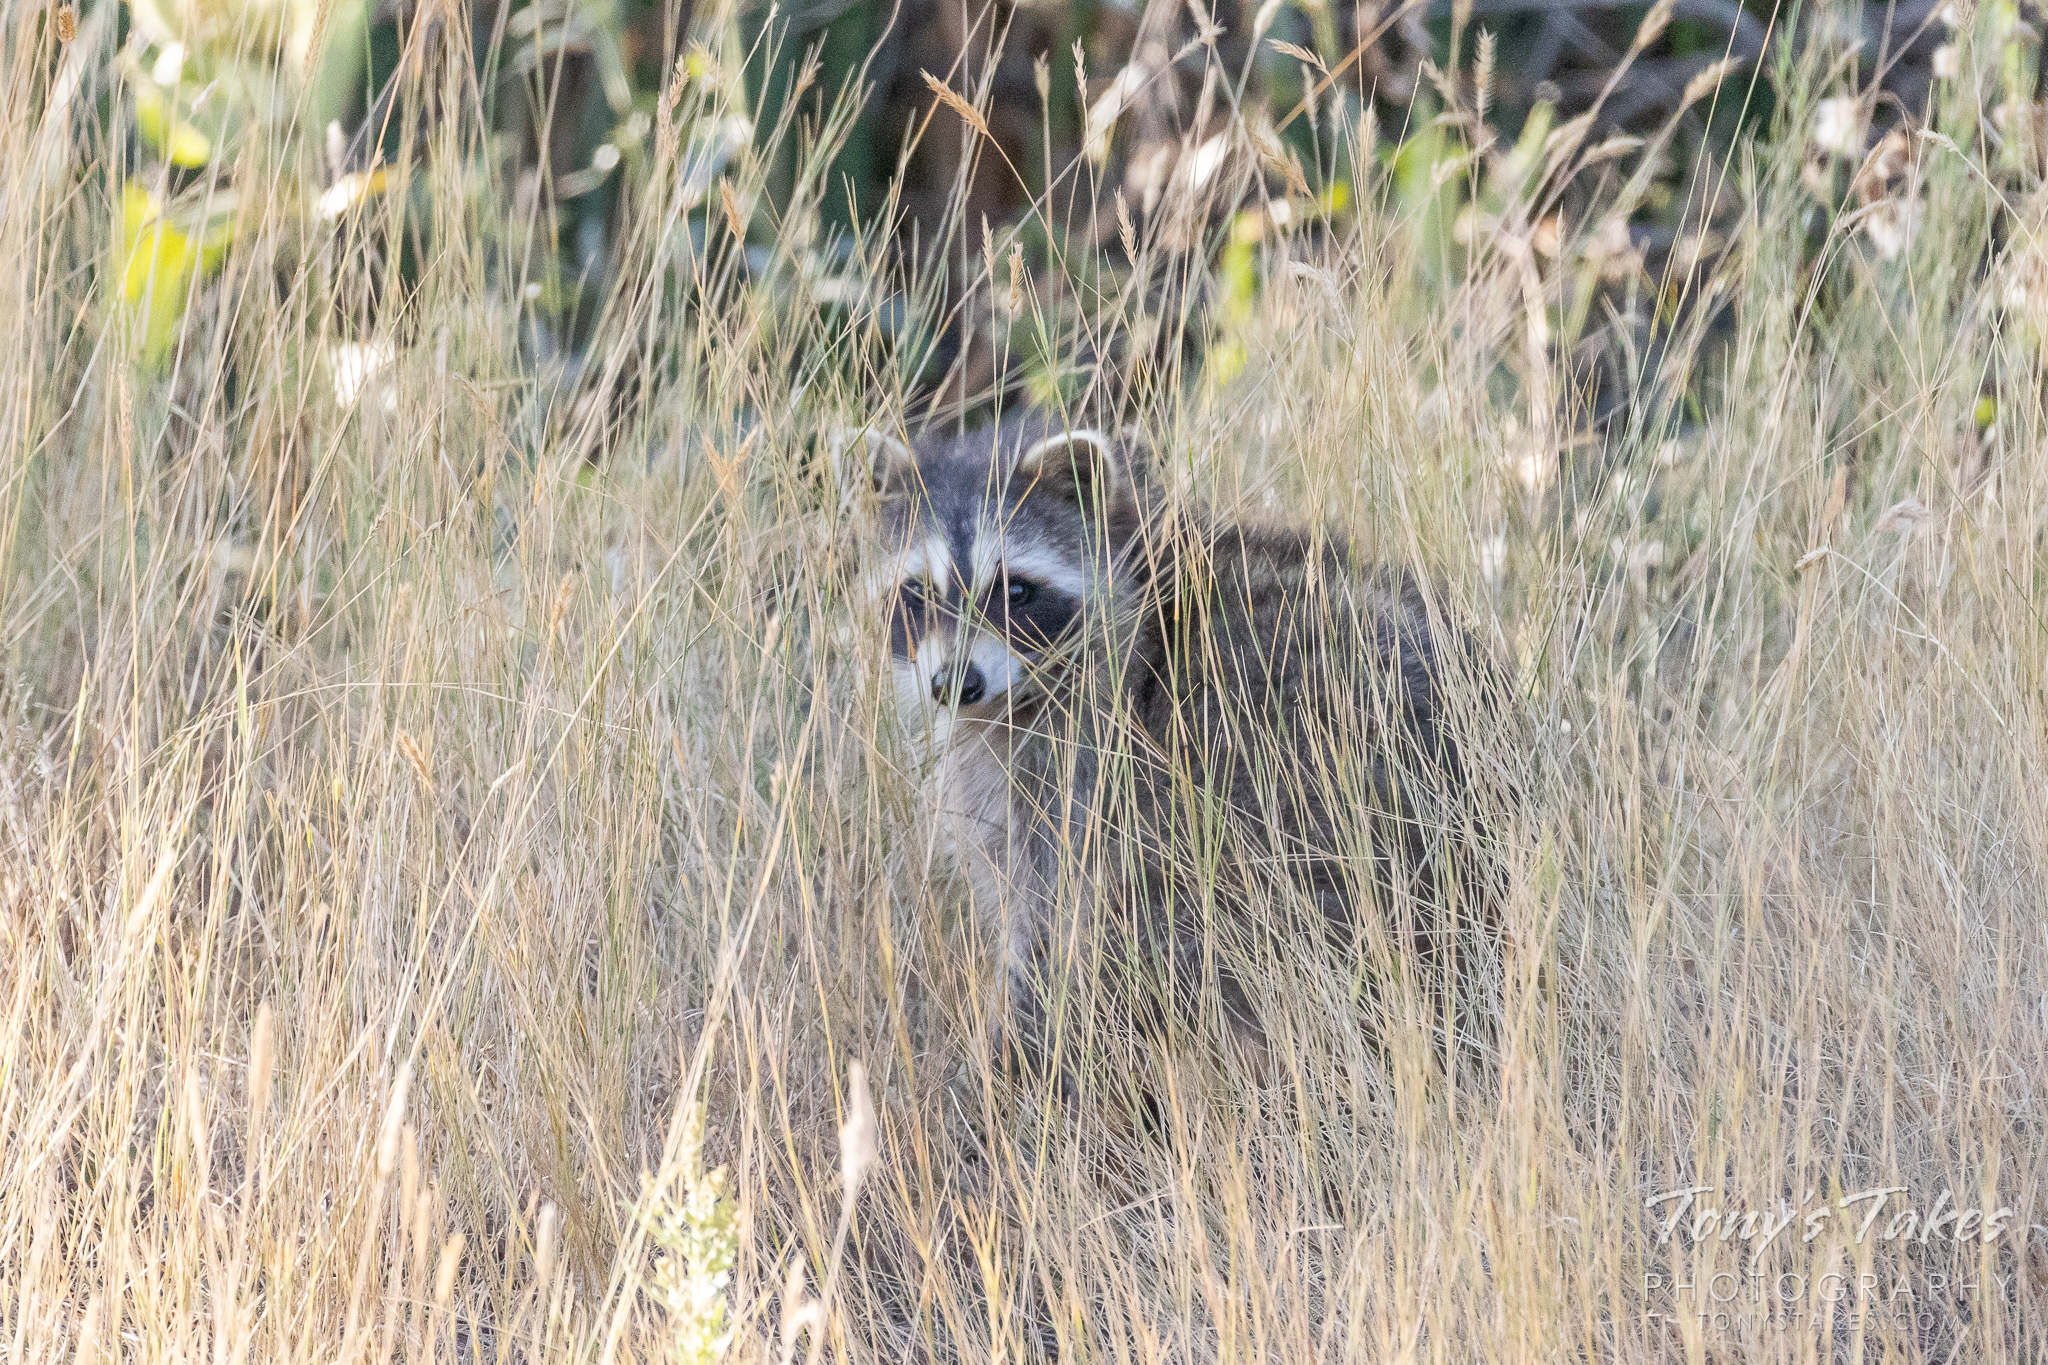 Raccoon hides in the grass